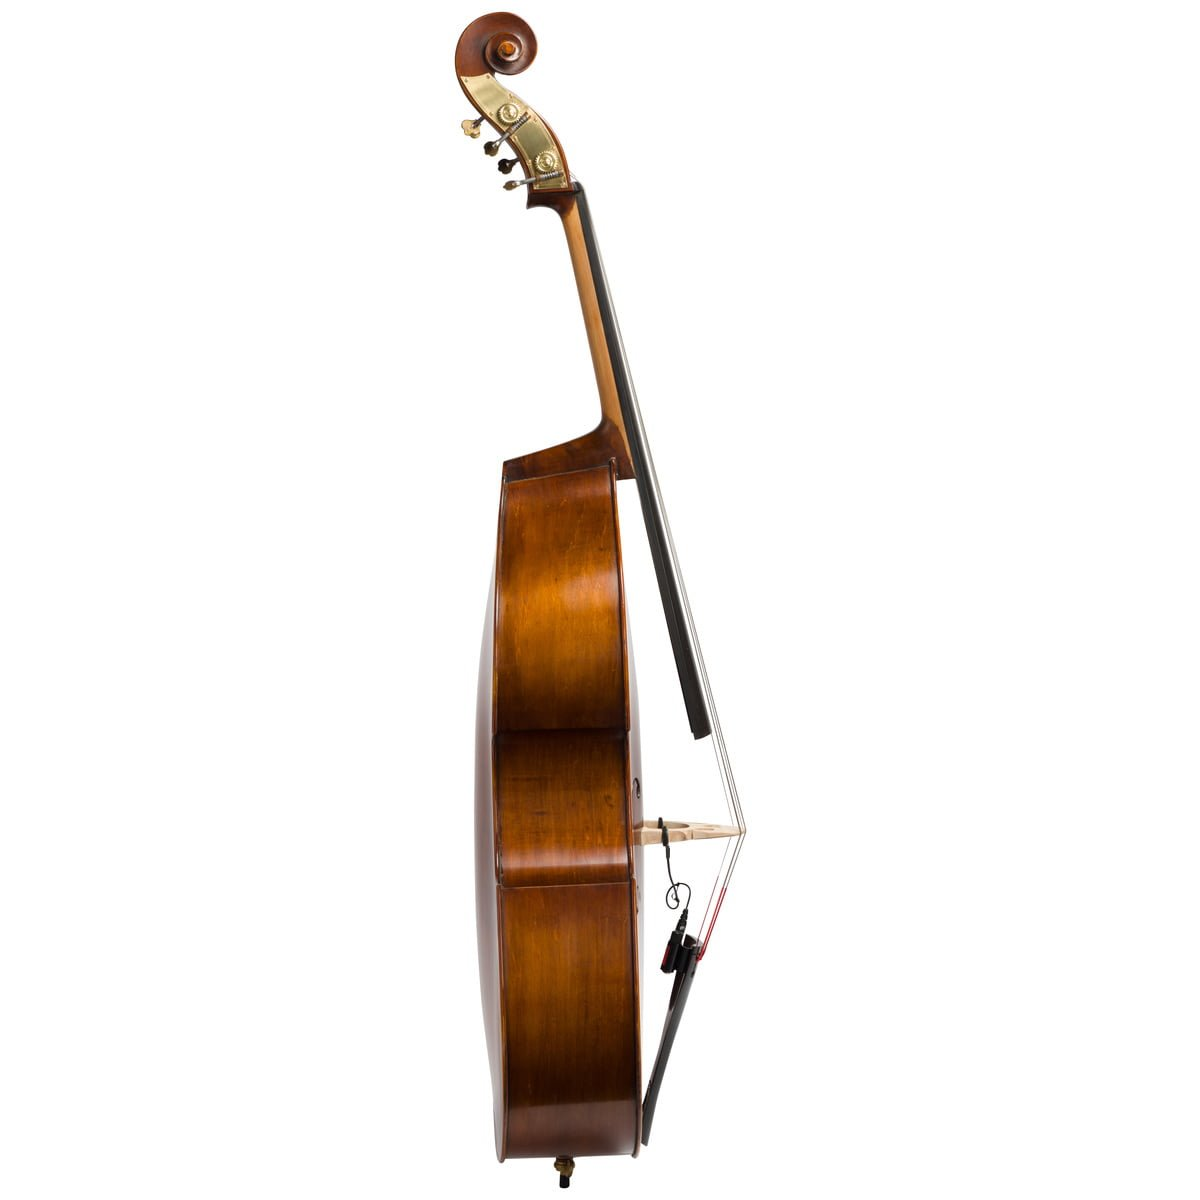 Side view of Eastman VB105 double bass fitted with an adjustable bridge and Spirocore strings